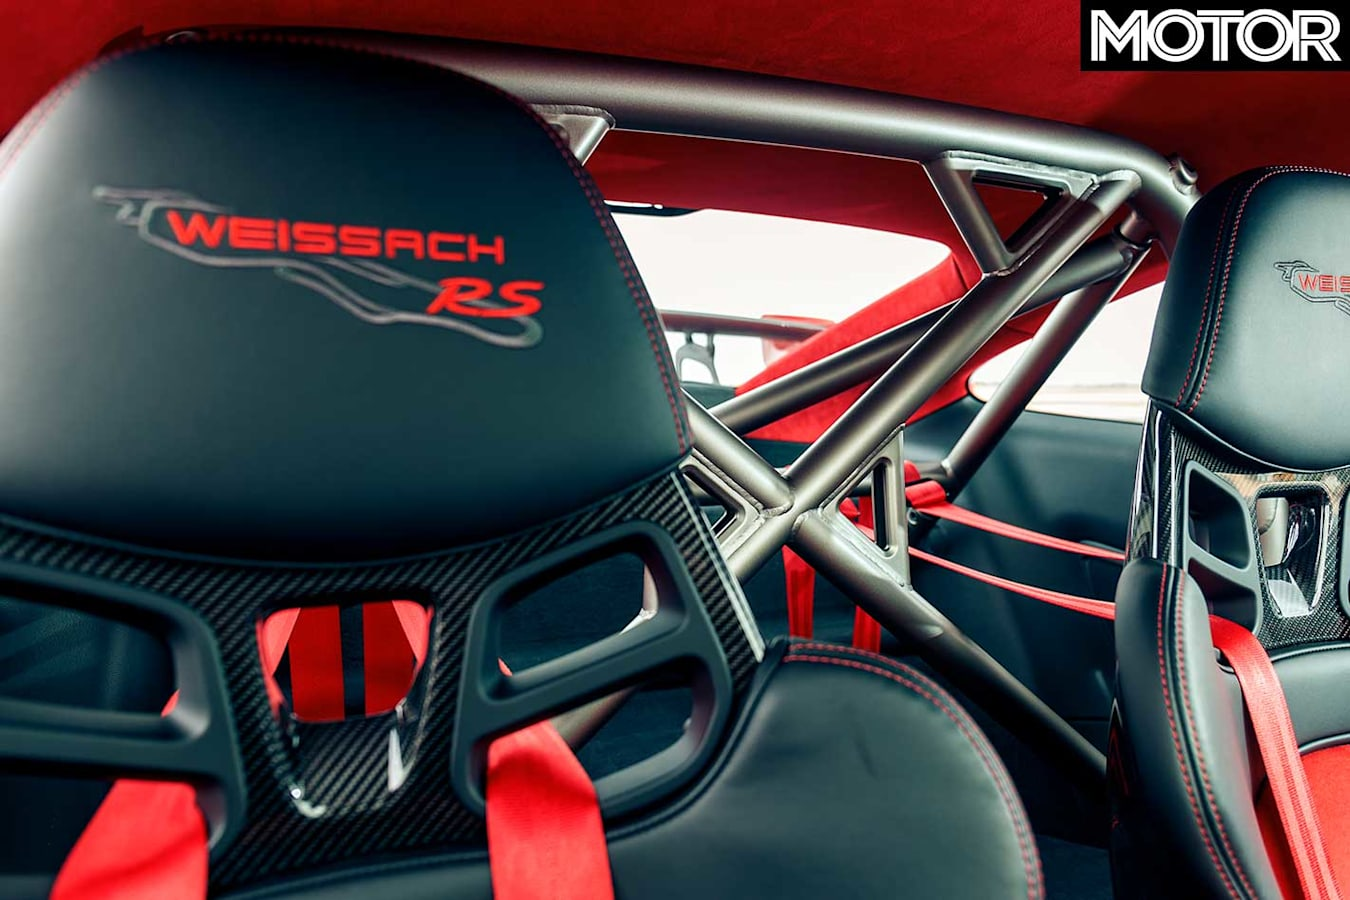 Performance Car Of The Year 2019 Porsche 911 GT 2 RS Interior Roll Cage Seats Jpg